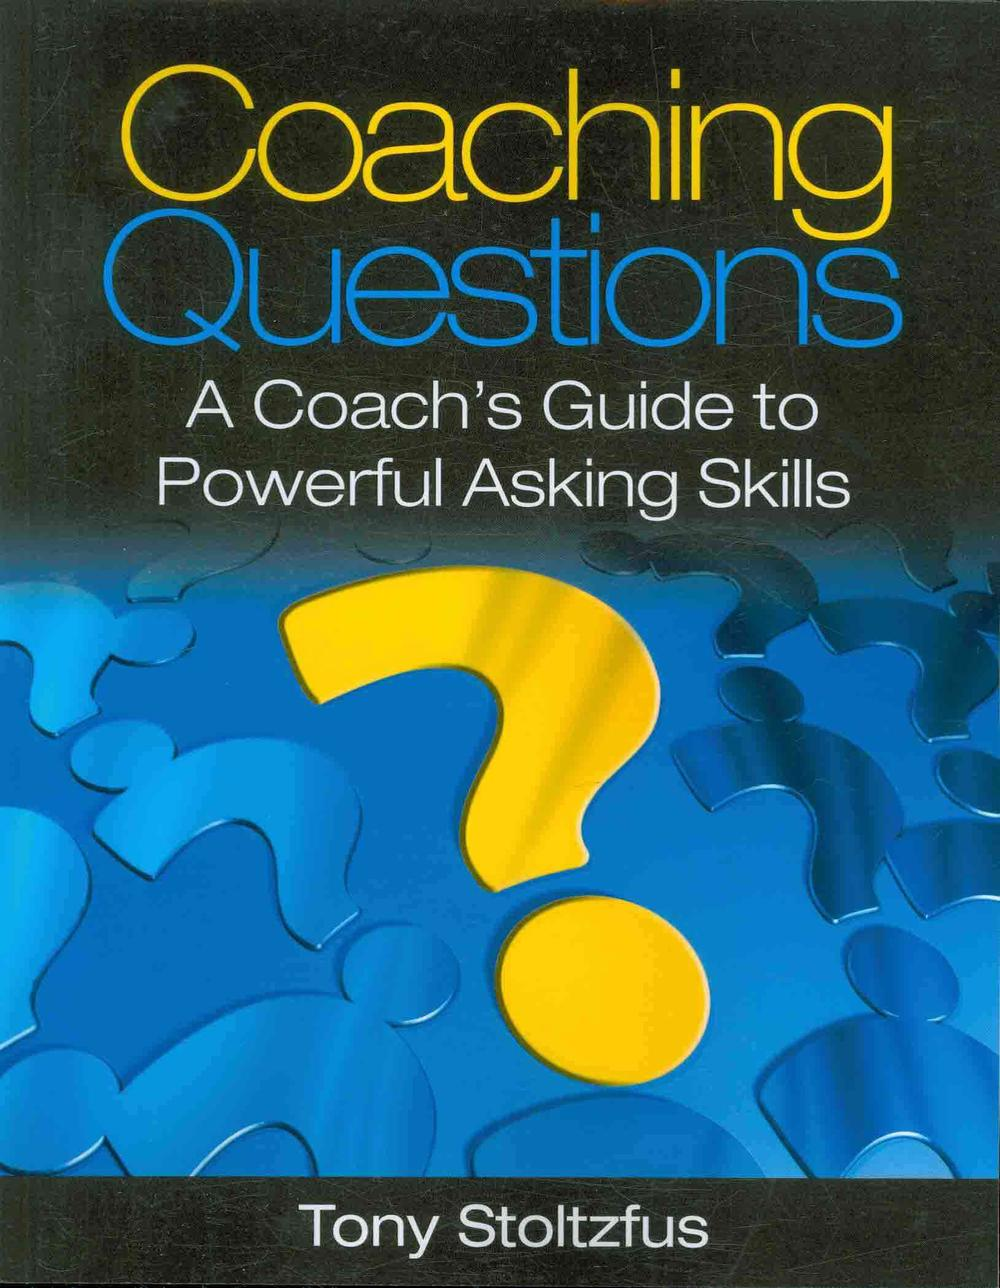 Coaching Questions: A Coach's Guide to Powerful Asking Skills by Tony Stoltzfus, ISBN: 9780979416361